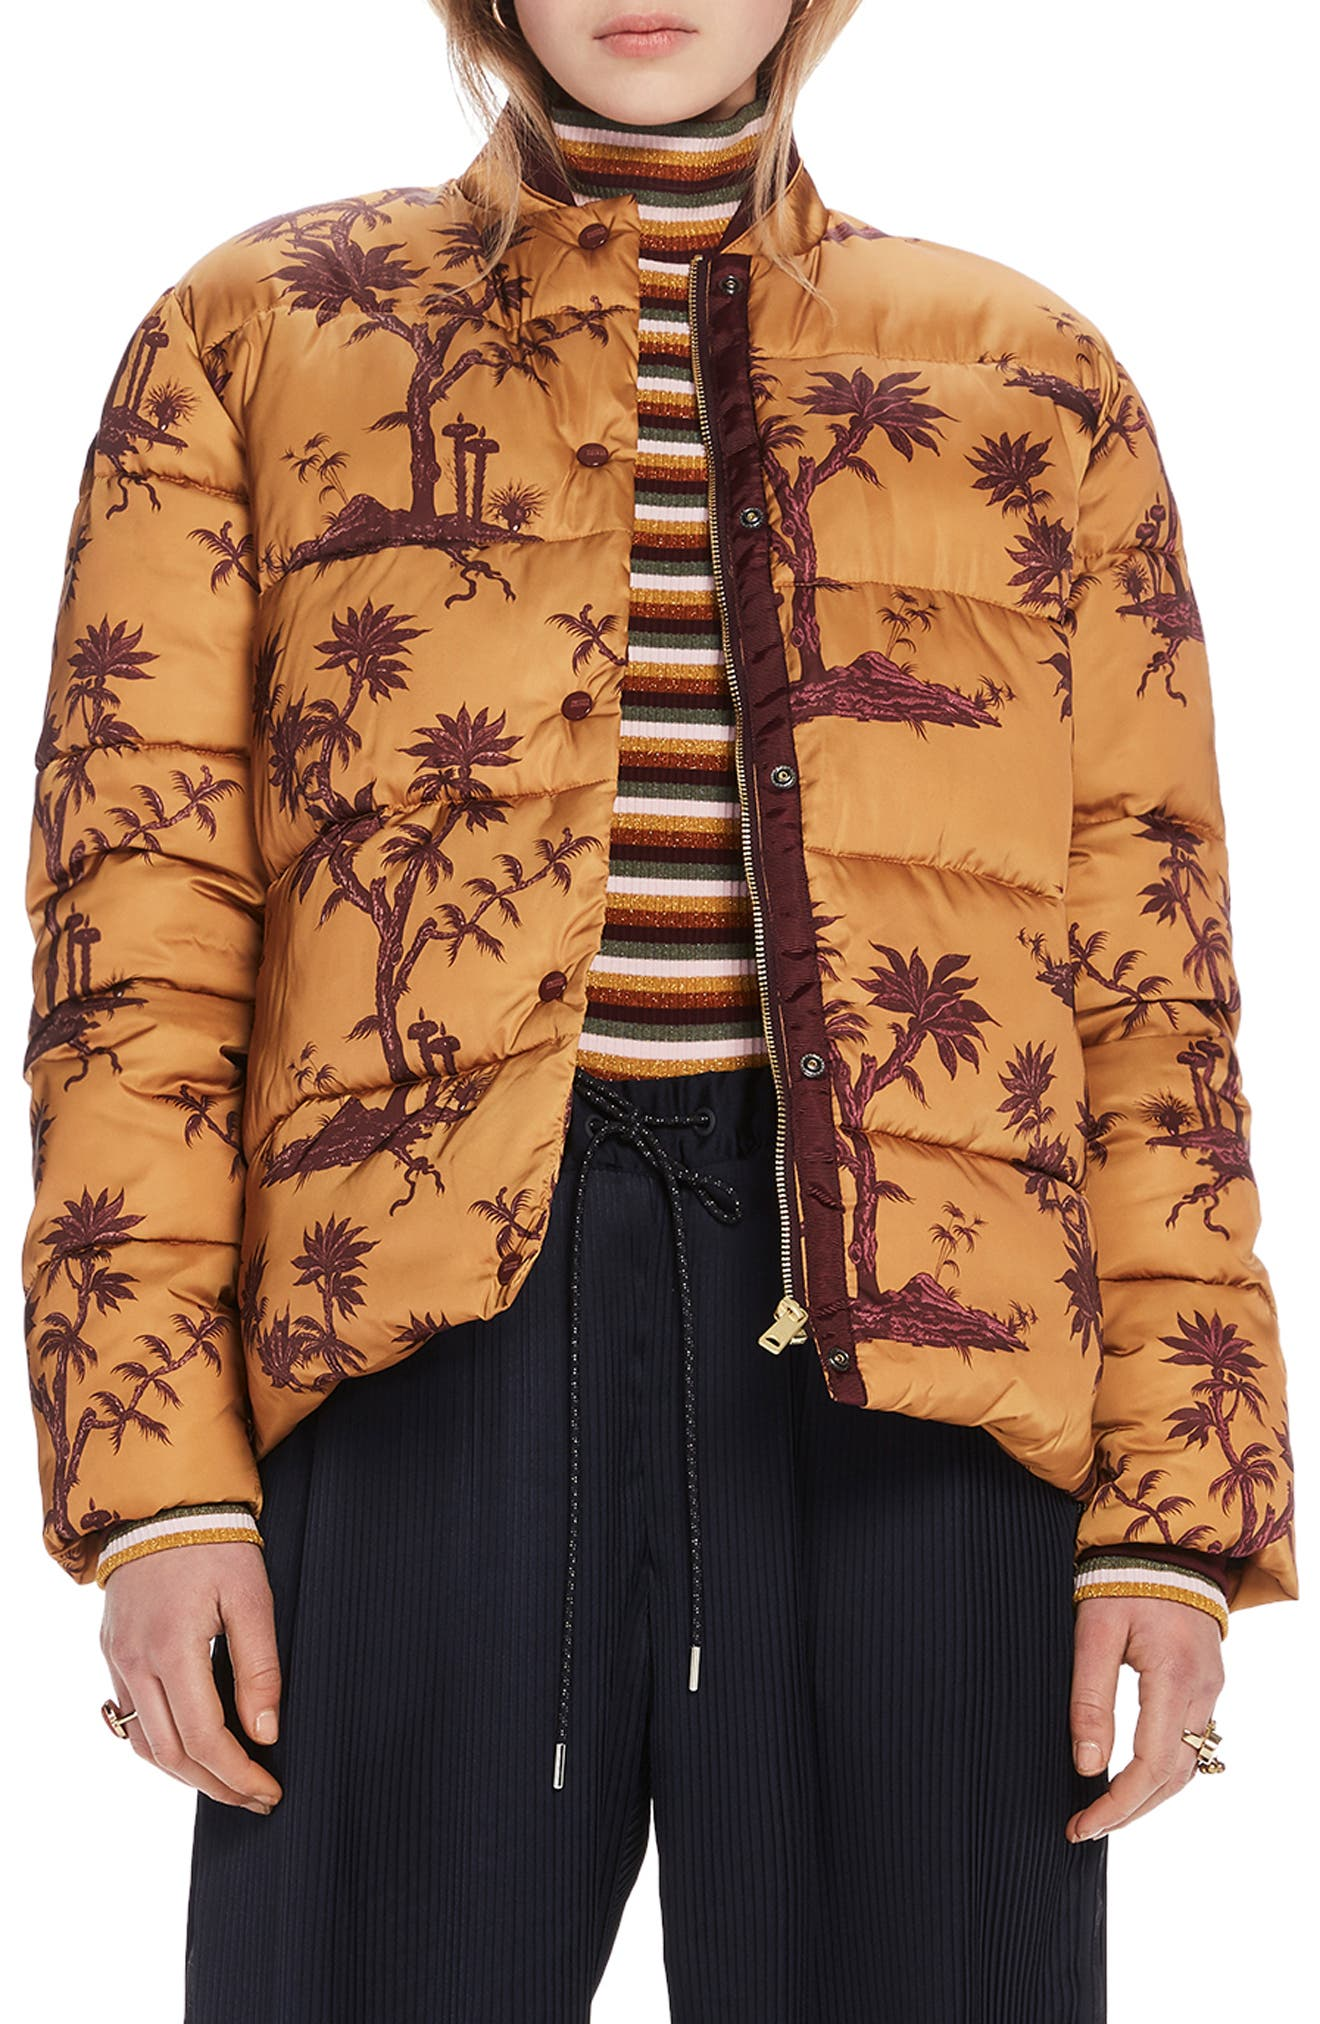 Print Insulated Jacket,                         Main,                         color, MULTI PRINT OCHRE PLANT SCAPE